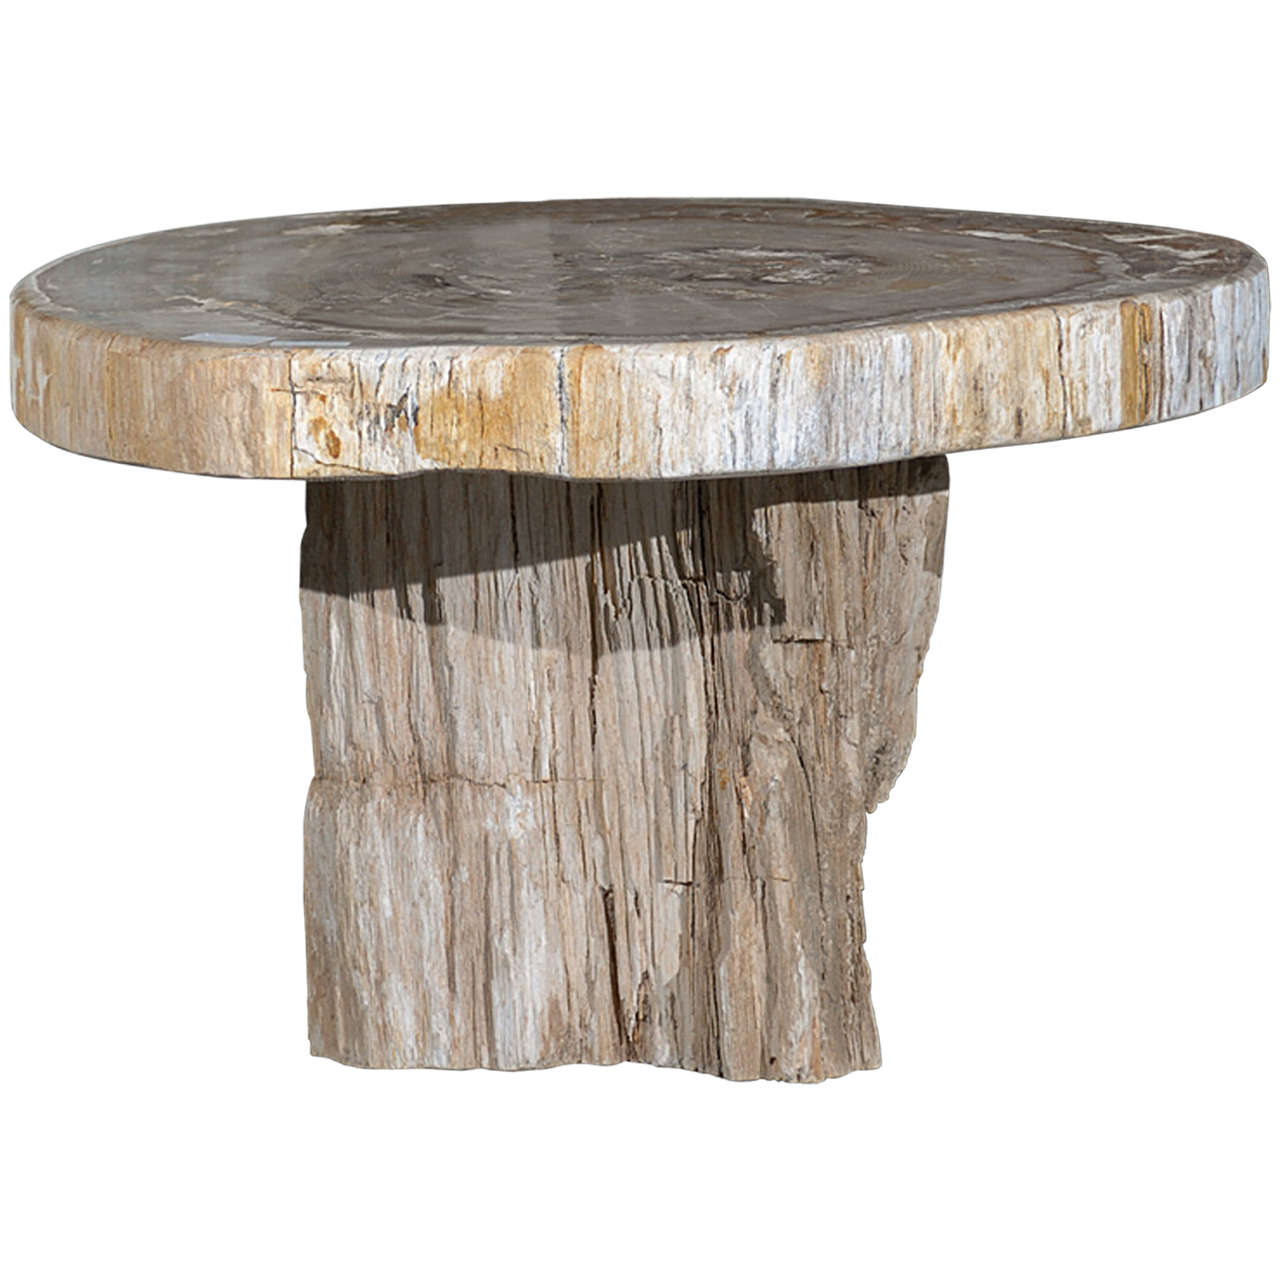 A Petrified Wood Coffee Table At 1stdibs